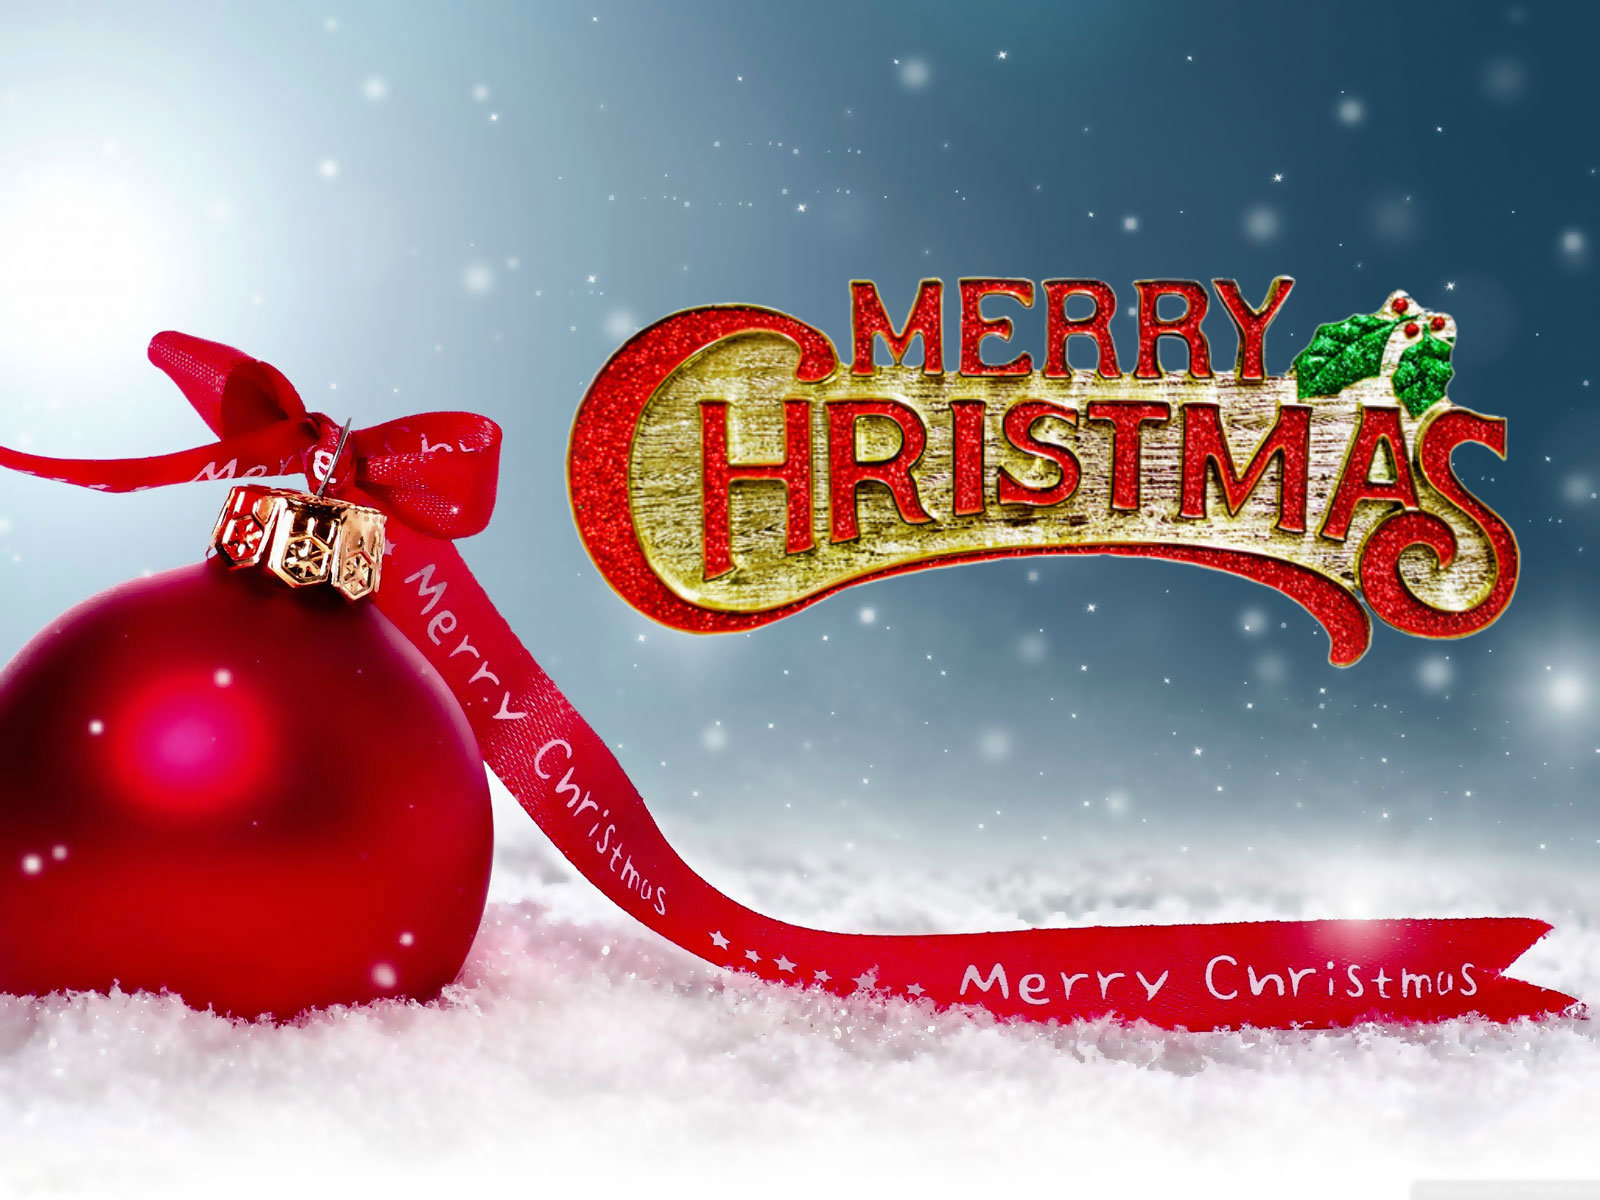 merry christmas 2020 wishes quotes images wallpapers for friends mary christmas happy new year 2020 merry christmas 2020 wishes quotes